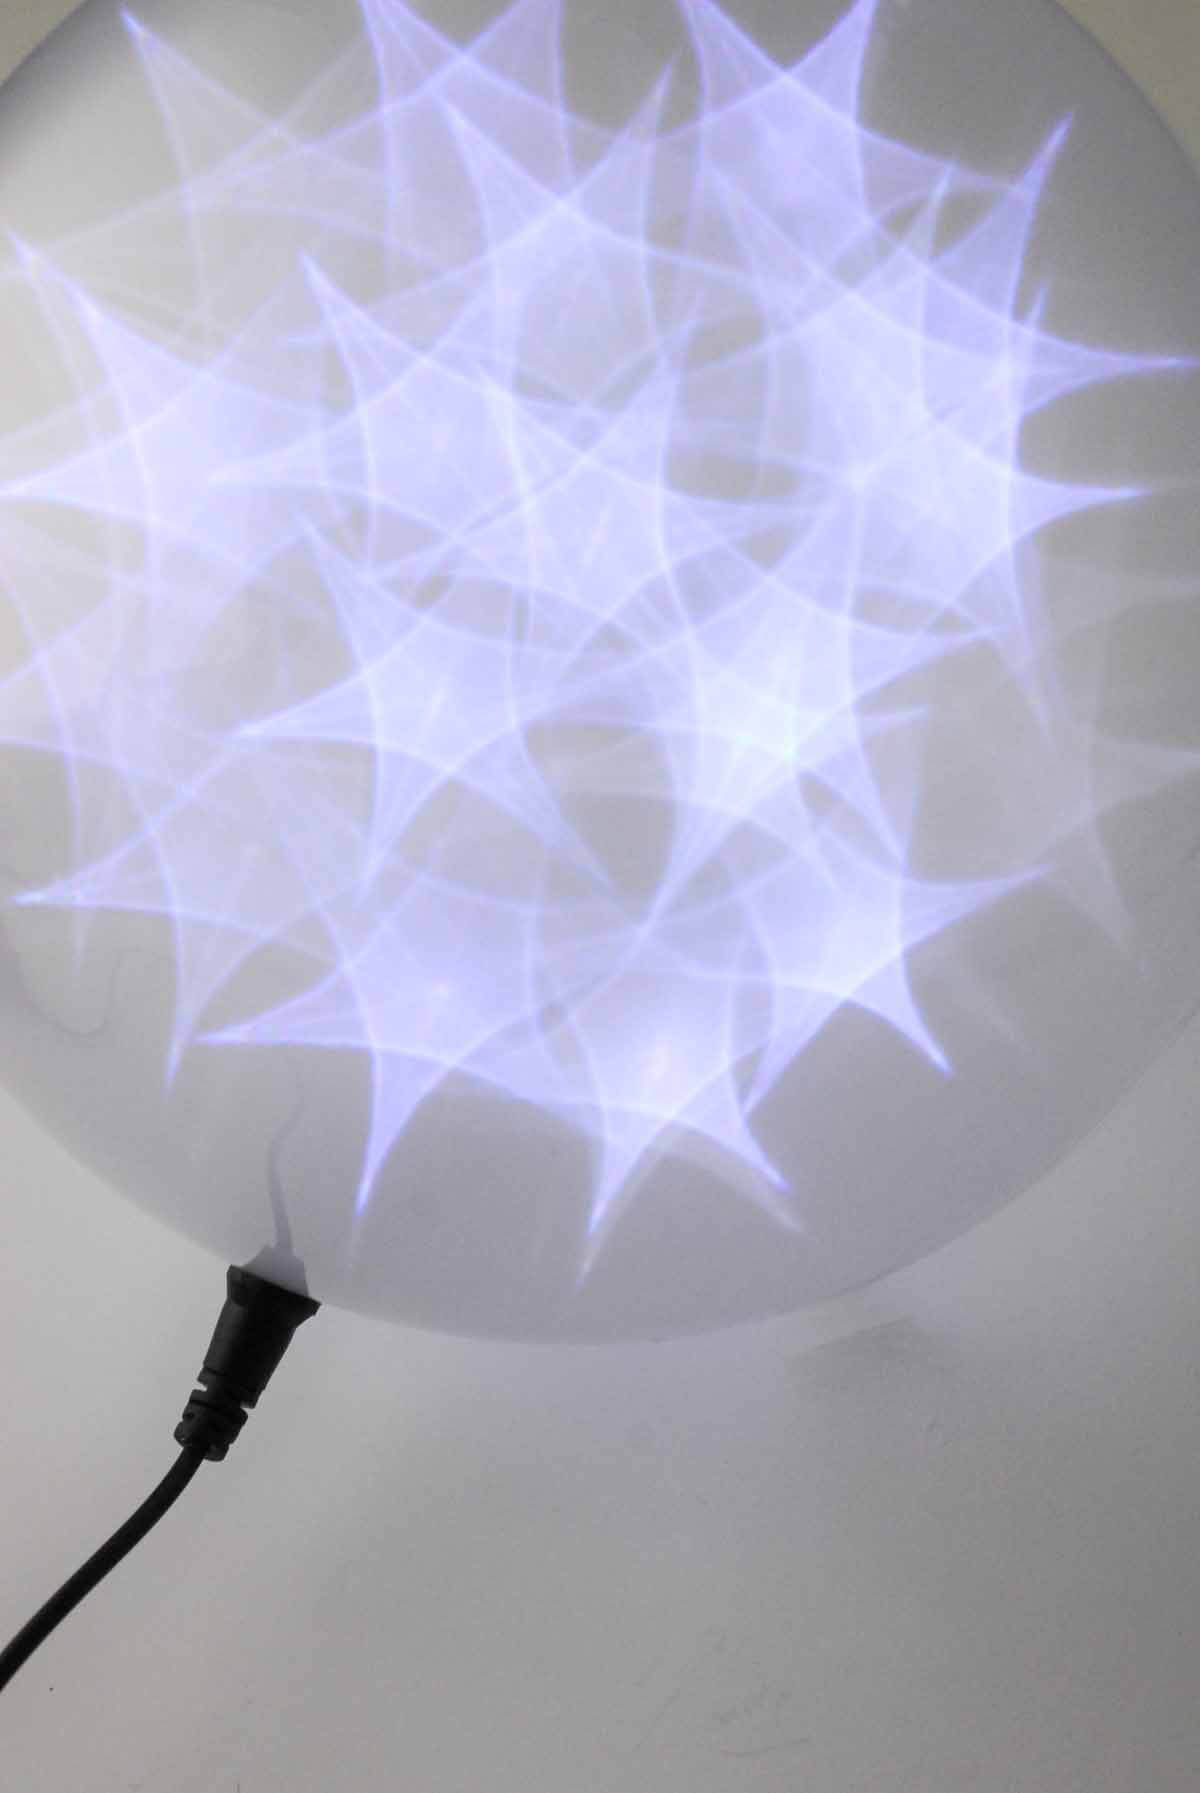 StarSphere Orb 8in Lighted Sphere, LED Ball, Battery Operated